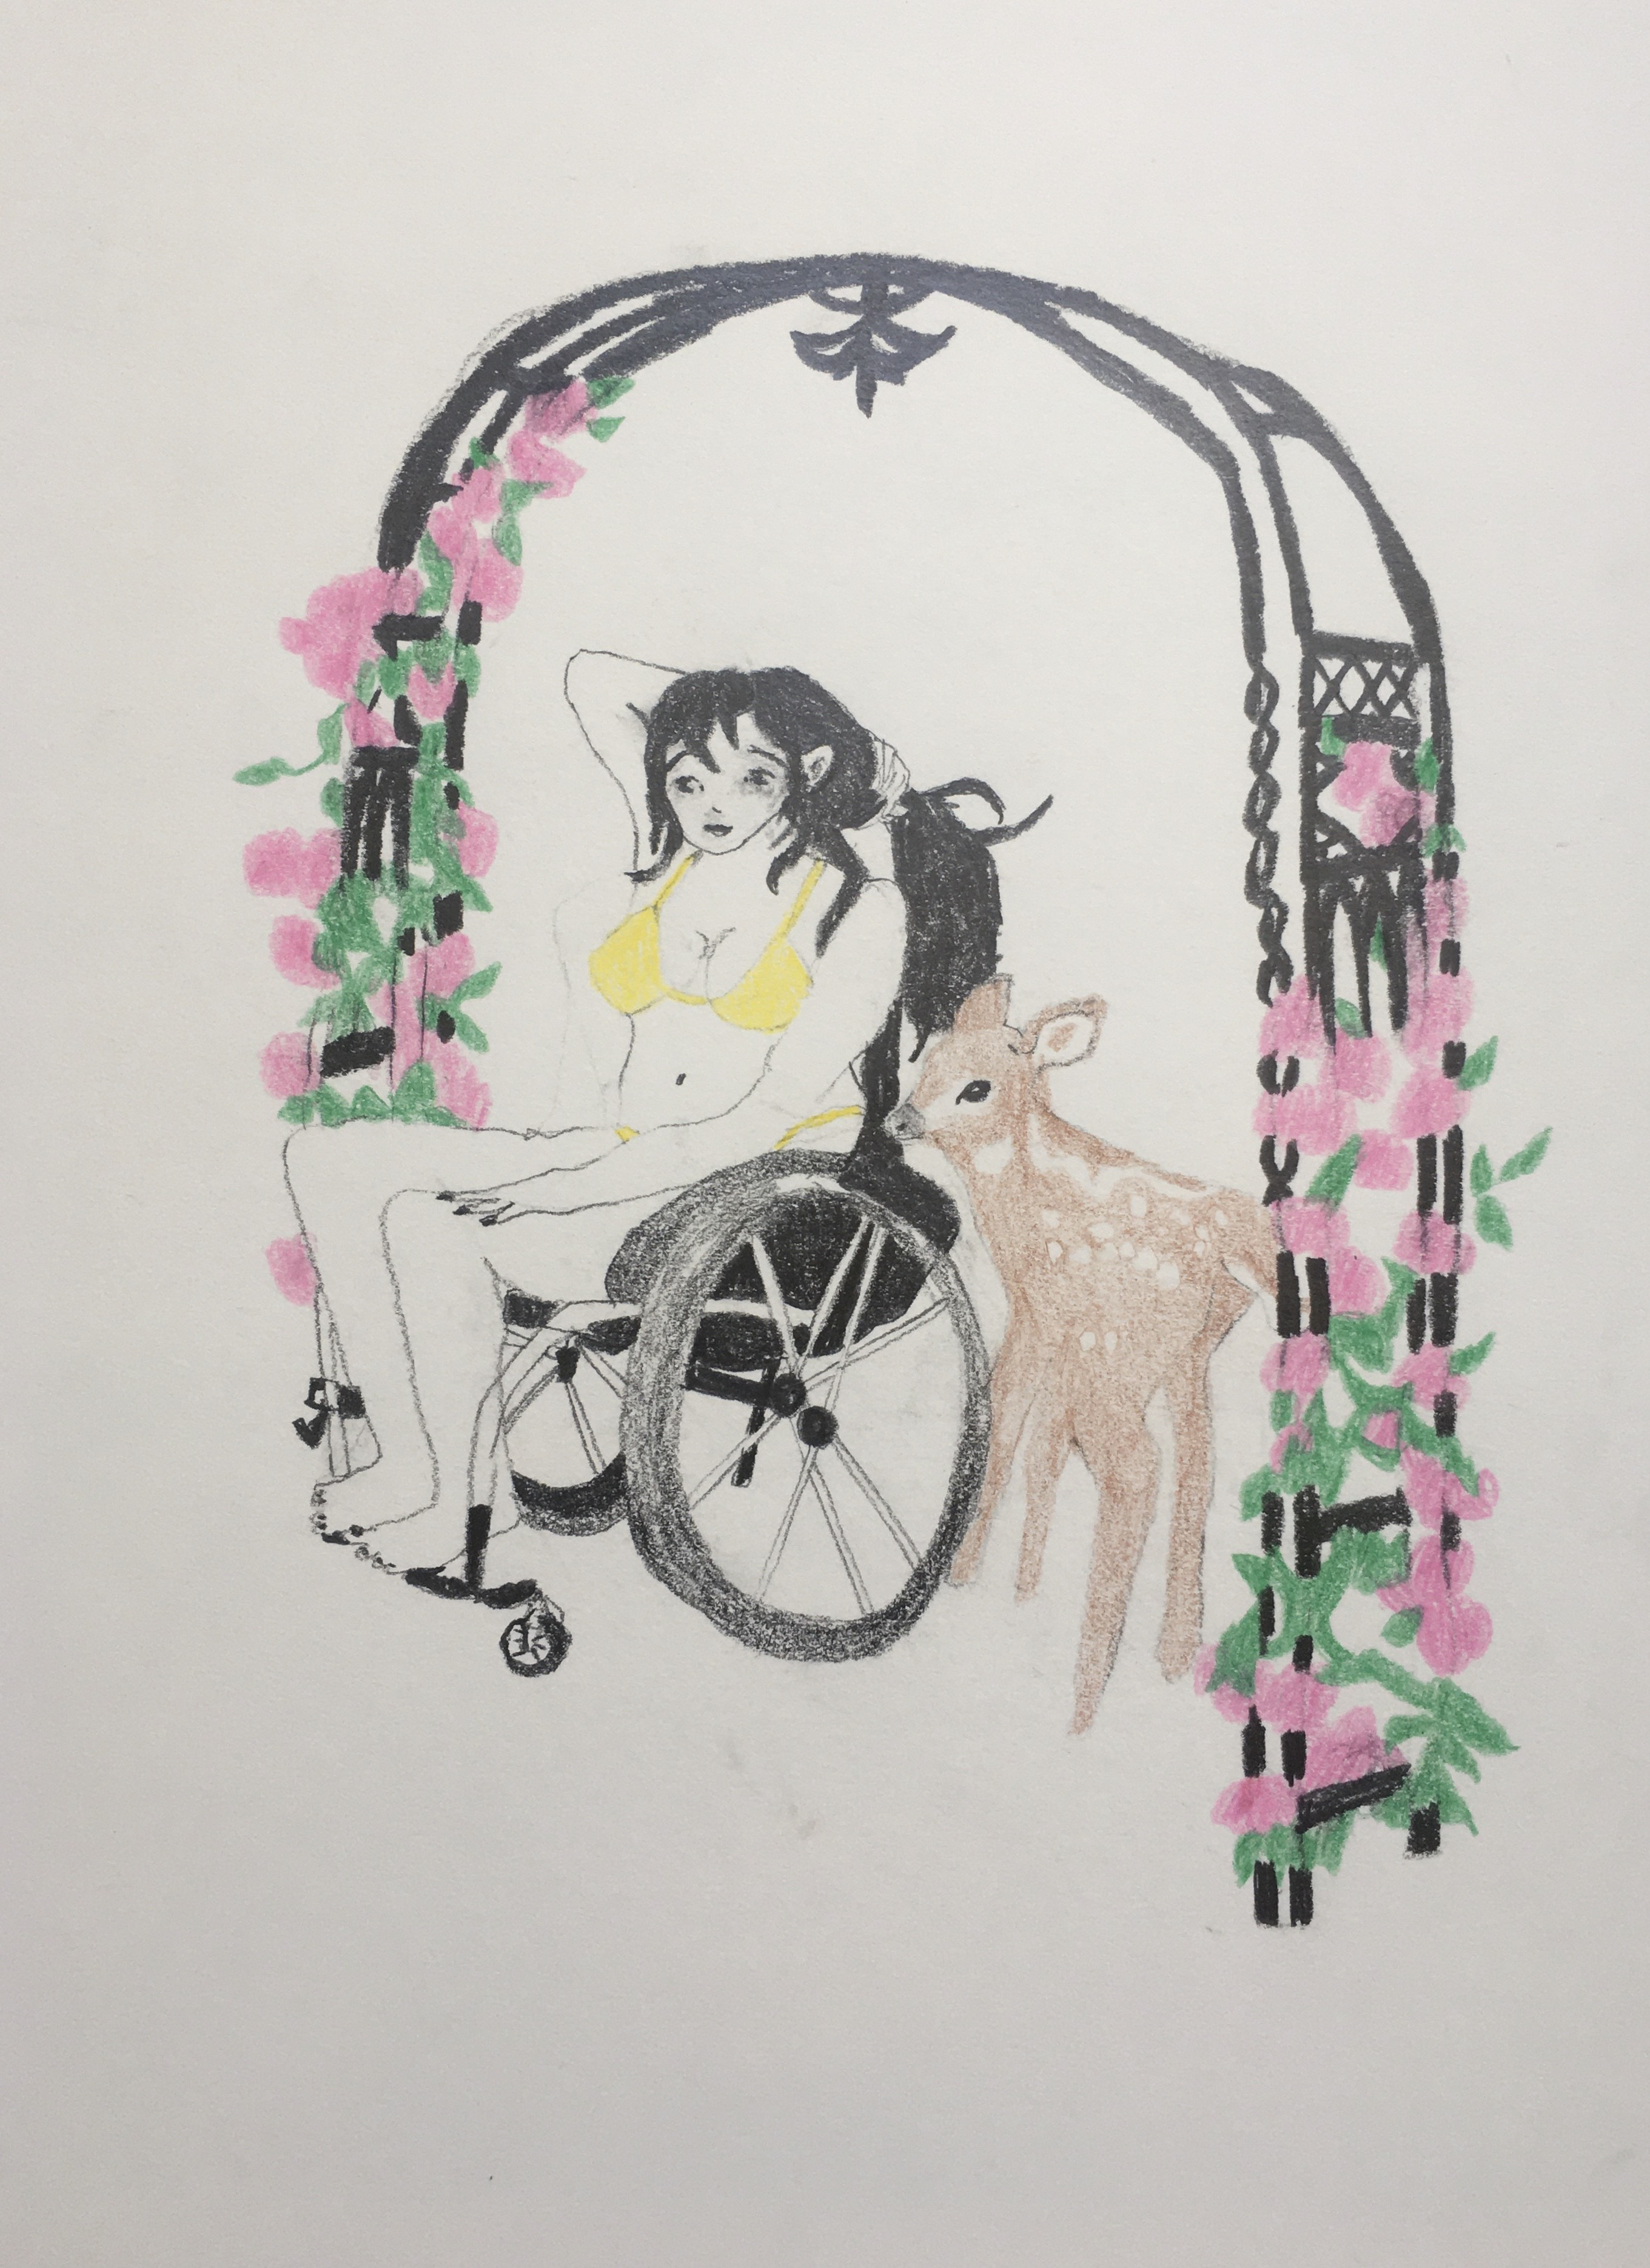 An individual wearing yellow underwear is seated in a wheelchair, holding their long, black hair behind their head, beside a young deer and under a flowered awning.